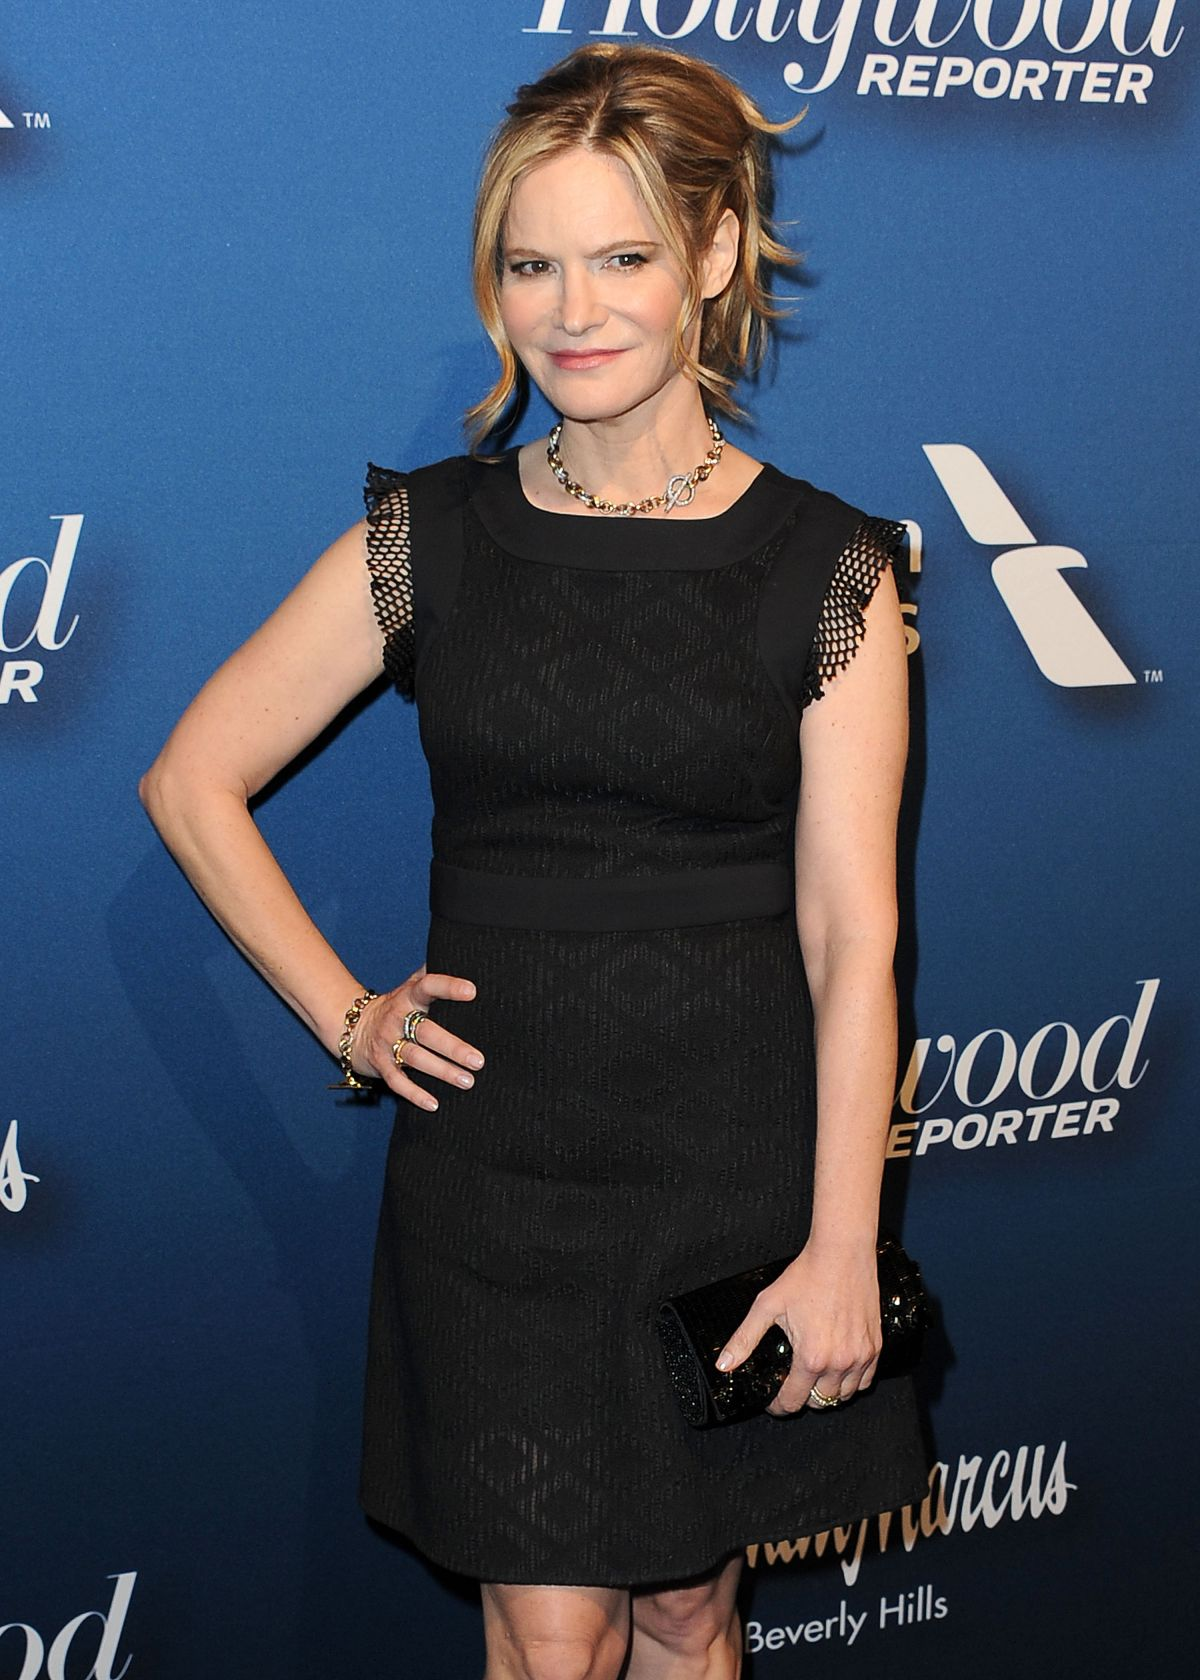 JENNIFER JASON LEIGH at Hollywood Reporter's 4th Annual Nominees Night in Beverly Hills 02/08/2016